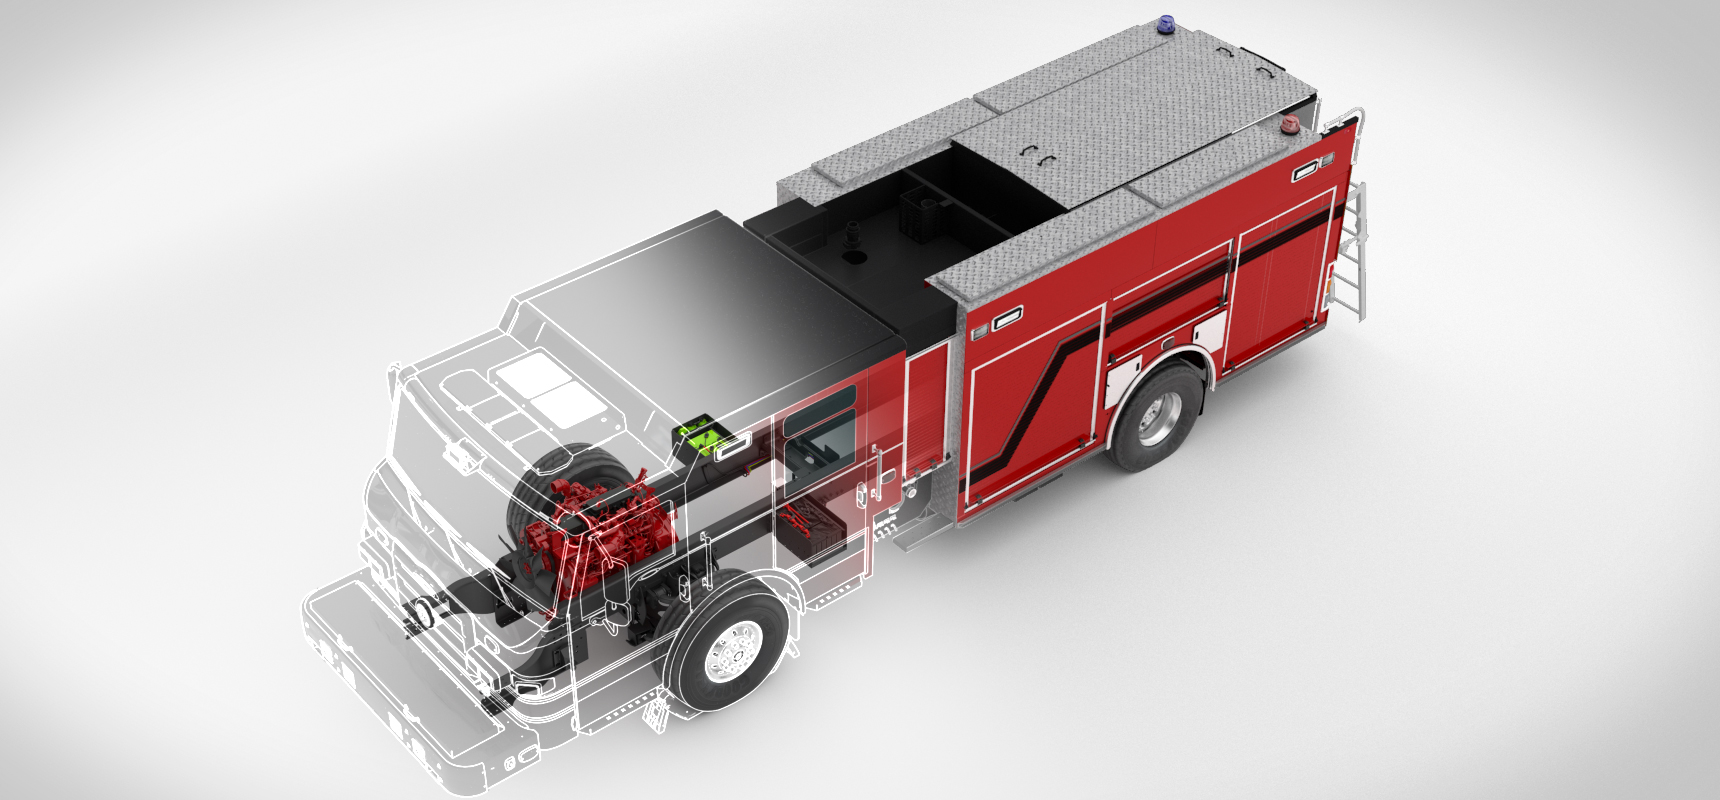 Pierce Fire Truck Idle Reduction Technology